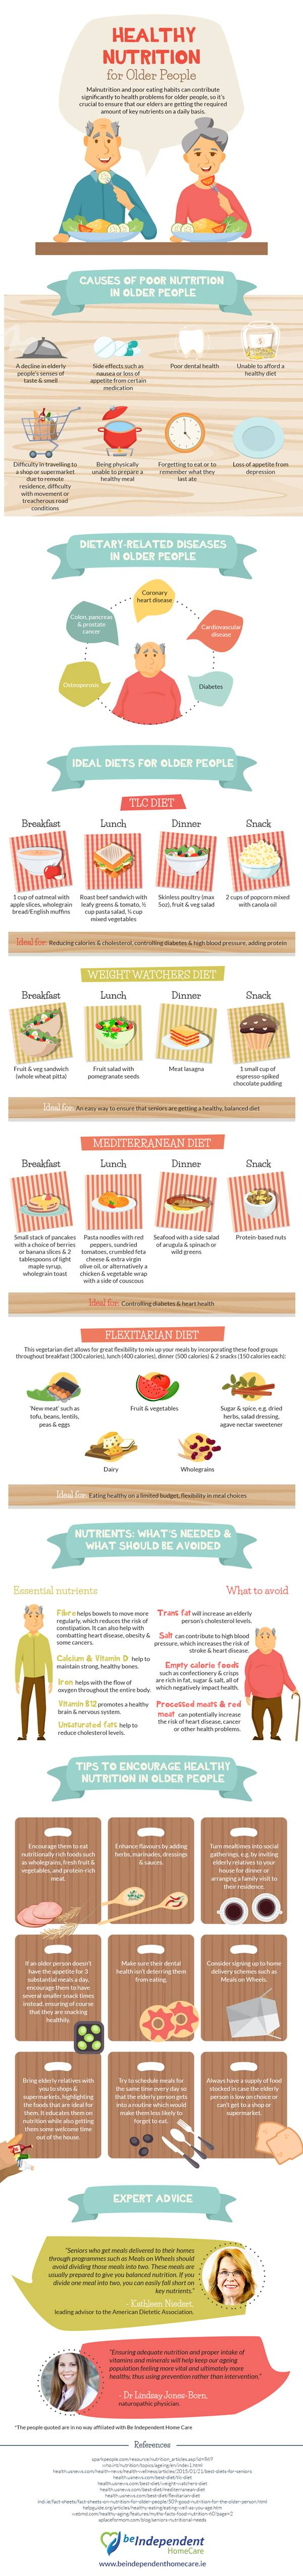 Healthy Nutrition for Older People - Infographic